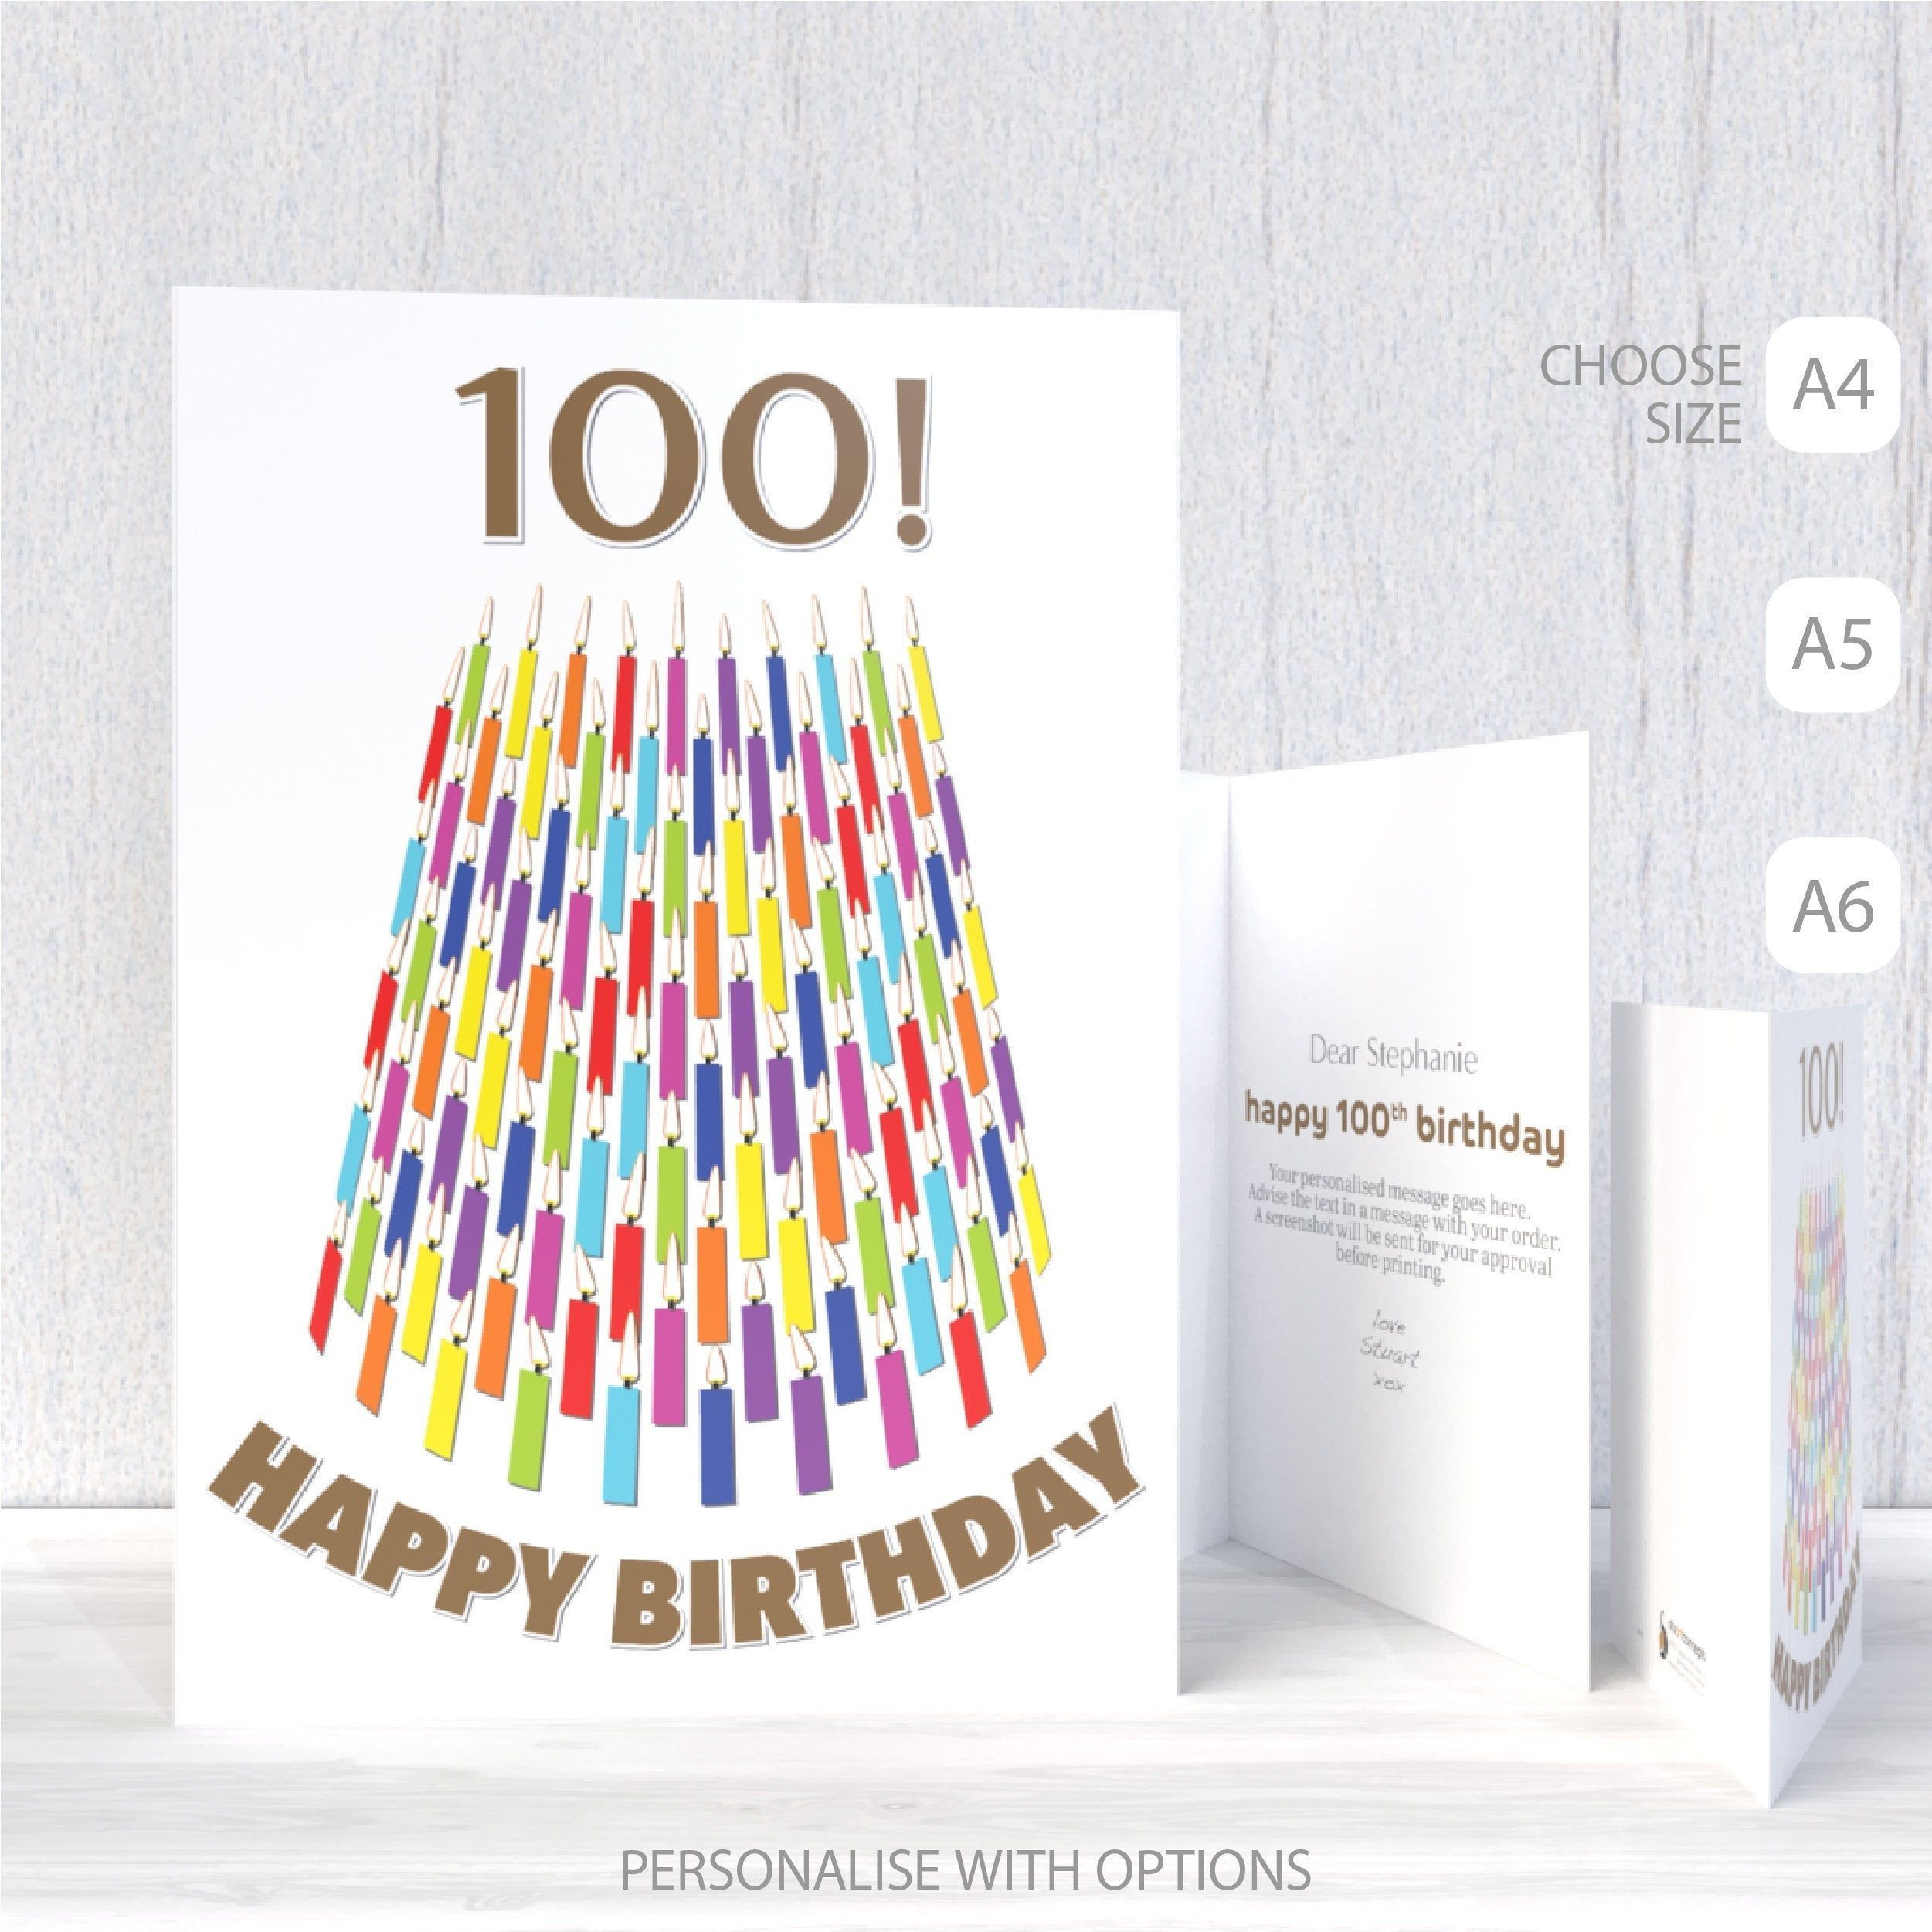 100th Birthday Card For Him For Her Unique 100 Bday Wishes Etsy Birthday Cards For Him 90th Birthday Cards 100th Birthday Card